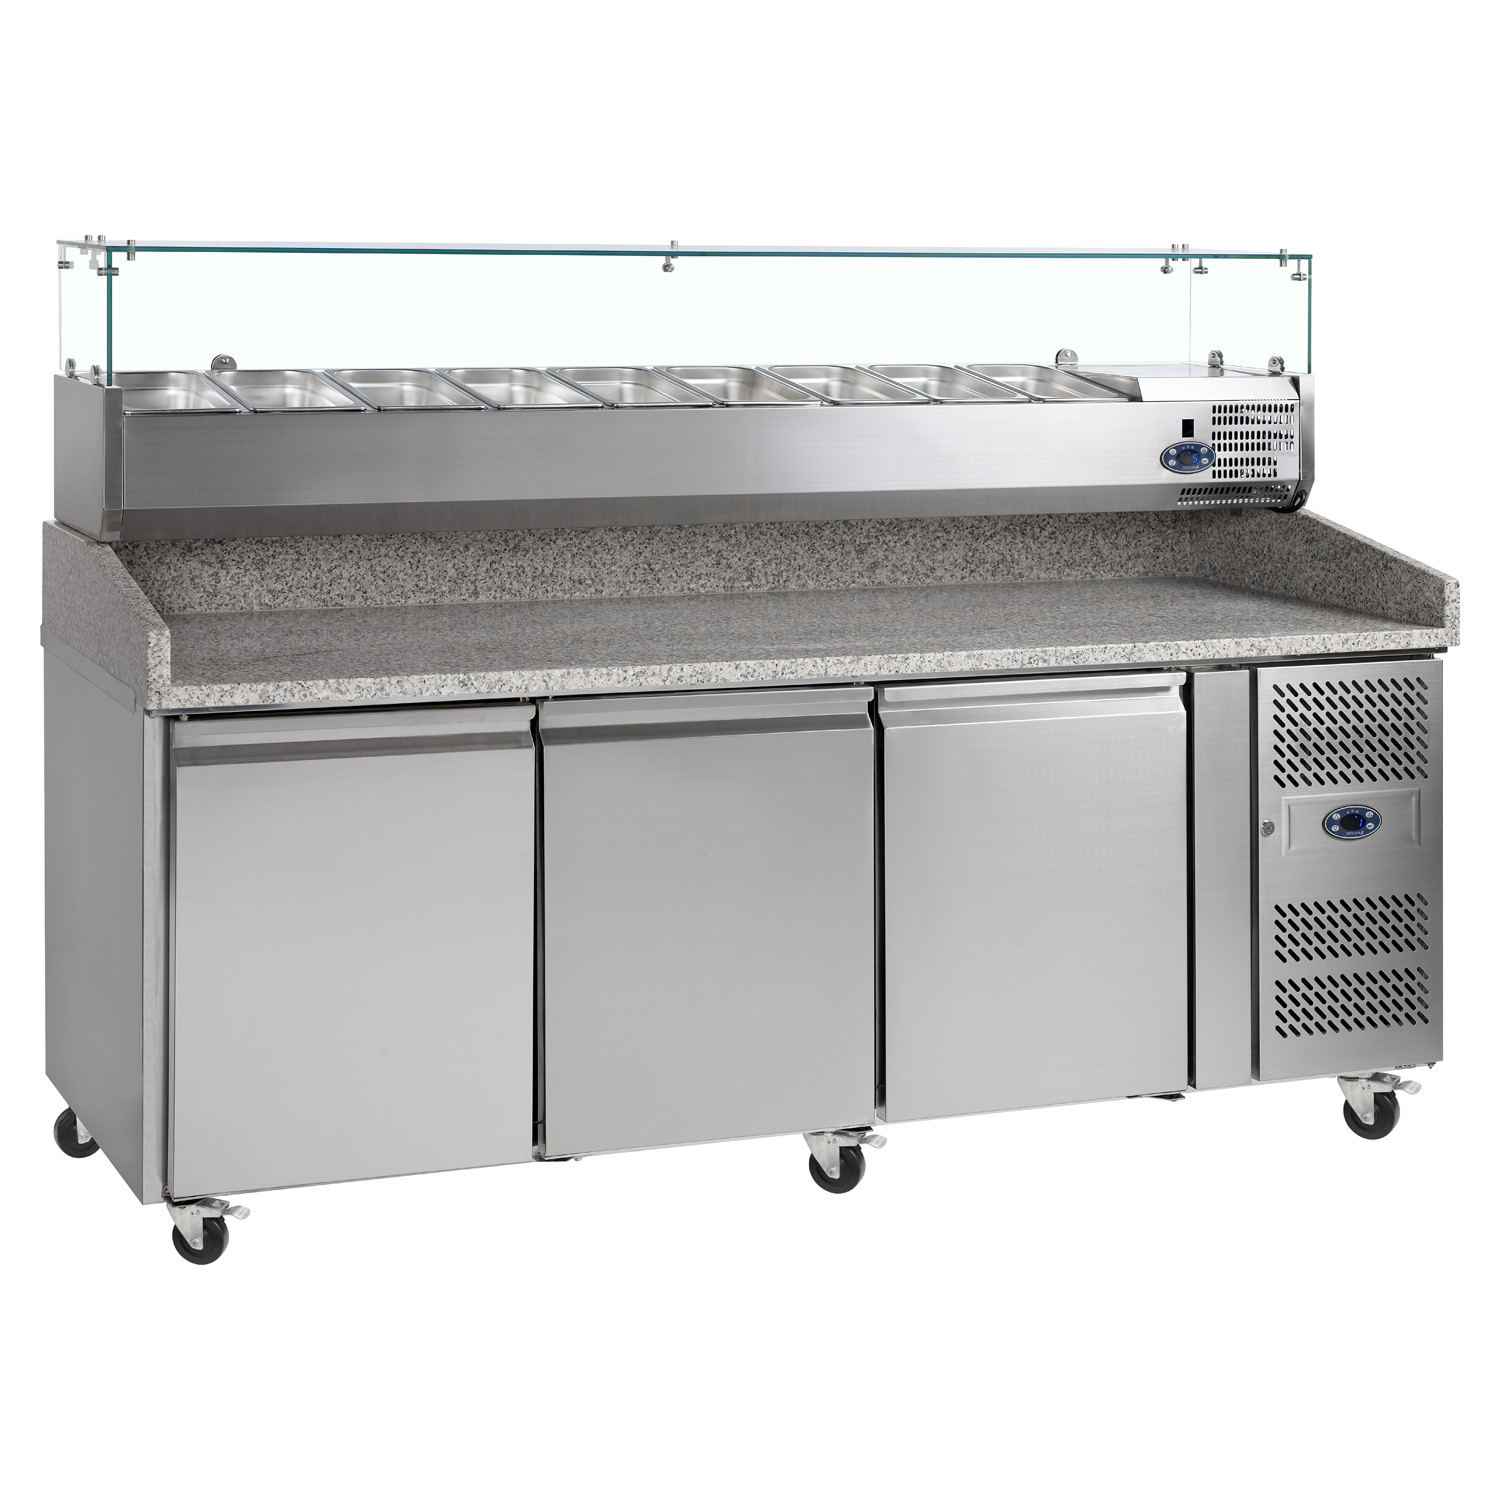 Tefcold PT1300 SS Stainless Steel Preparation 3-Door Counter Chiller